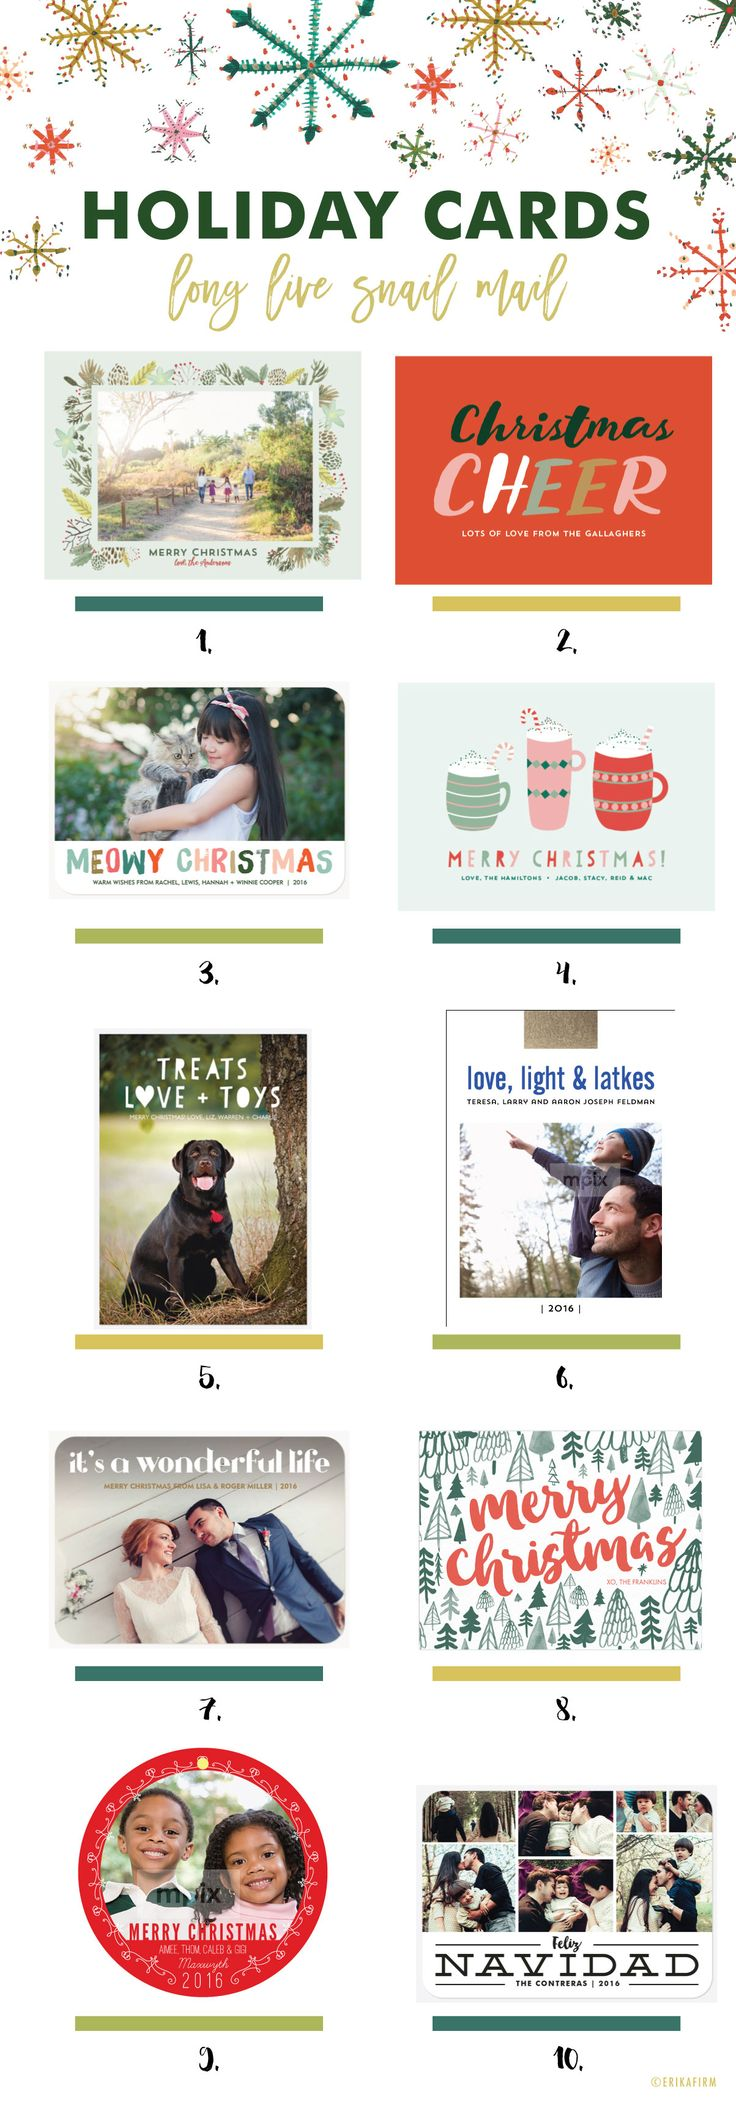 Image Result For Holiday Cards On